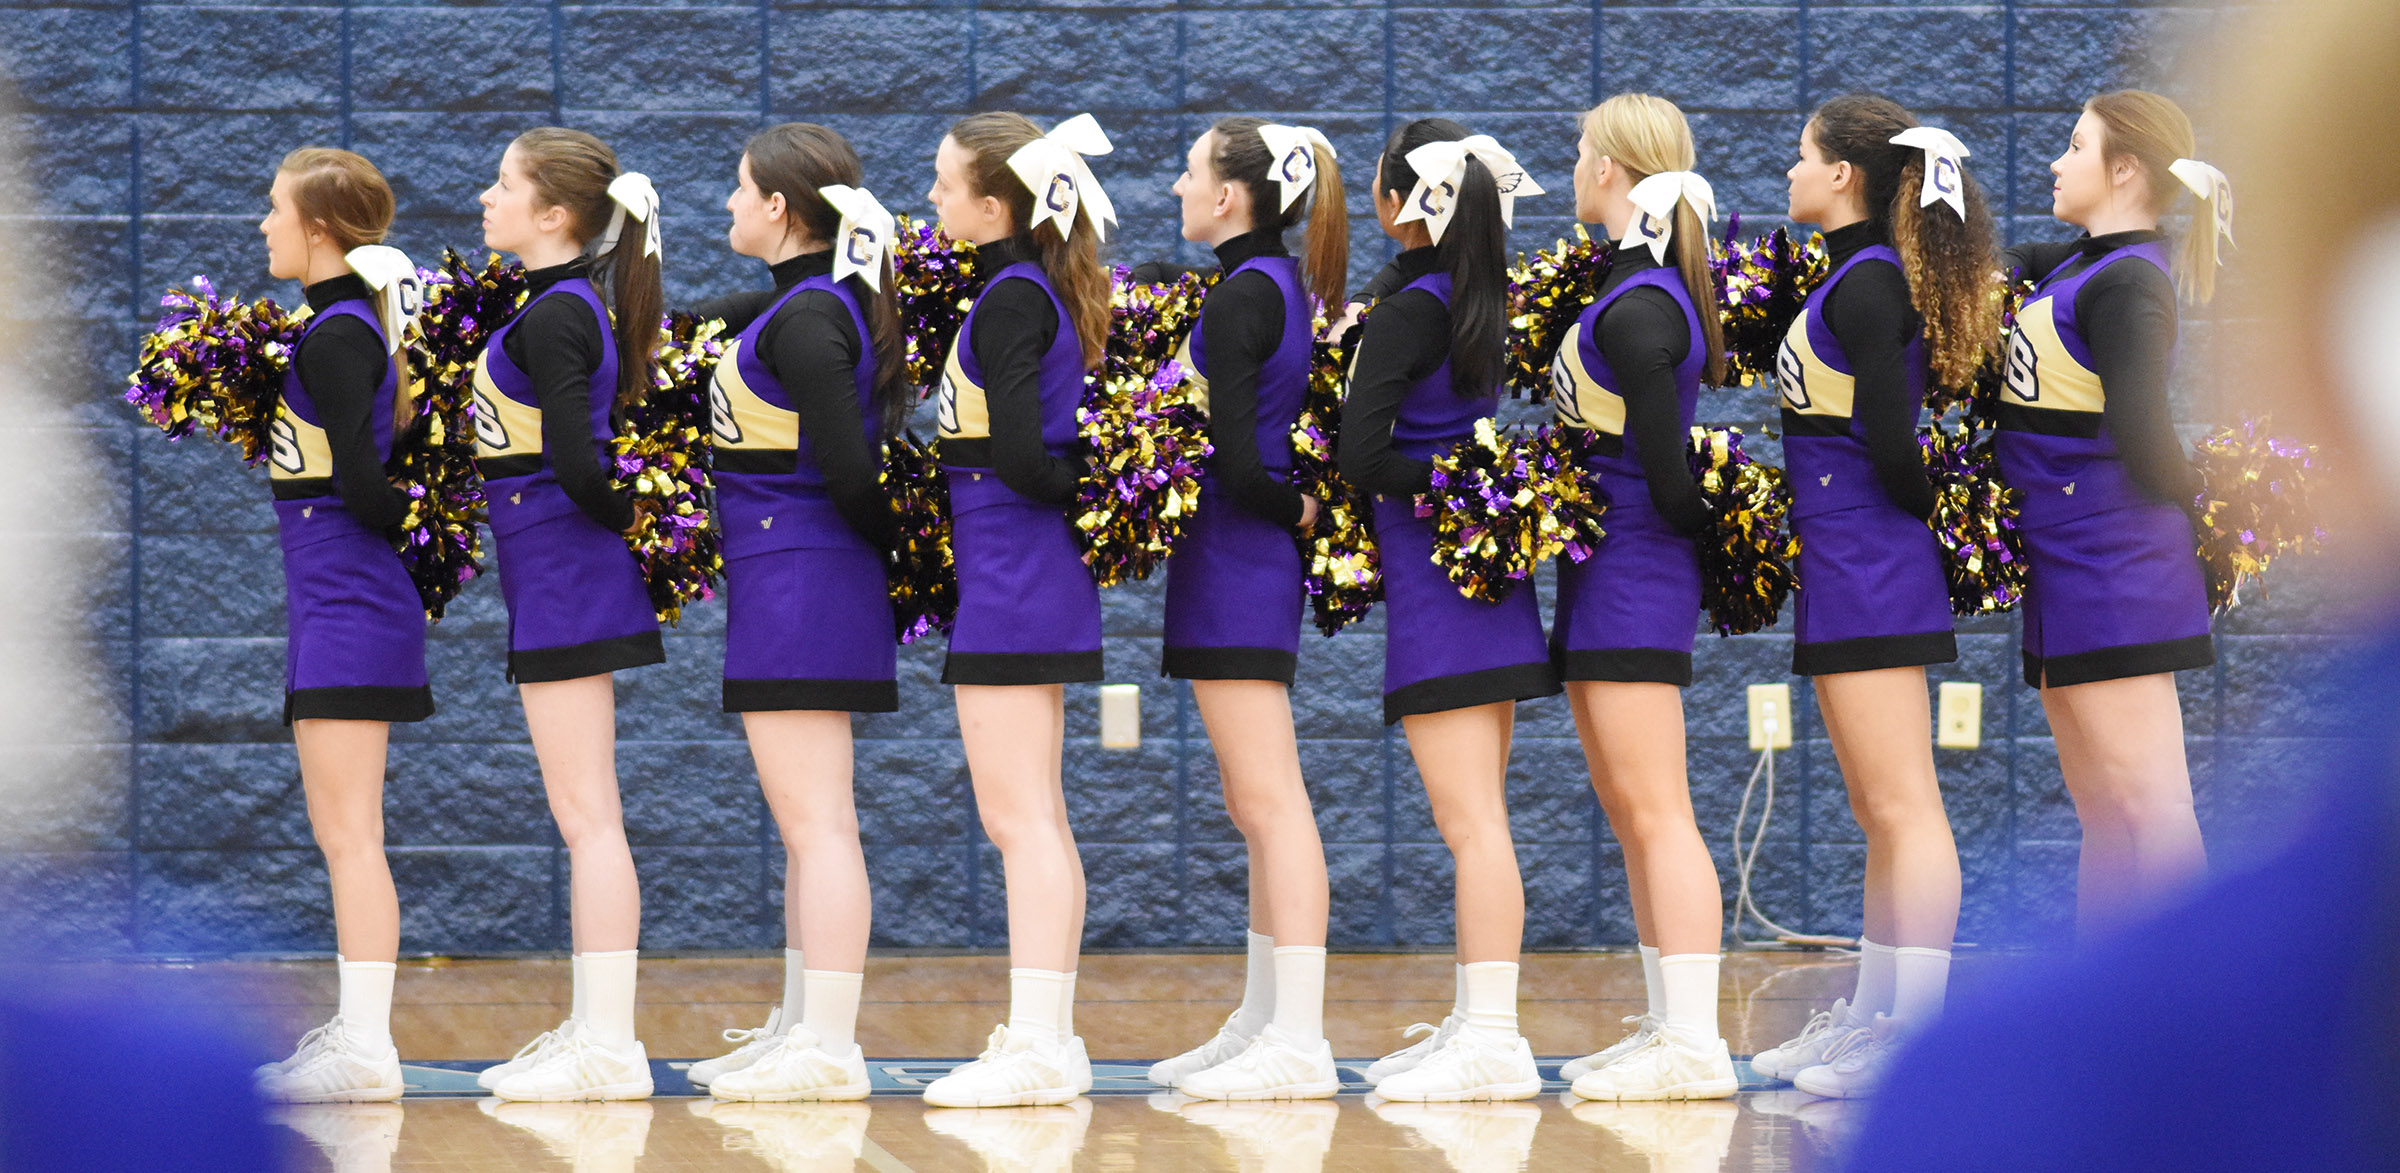 CHS cheerleaders stand for the National Anthem.